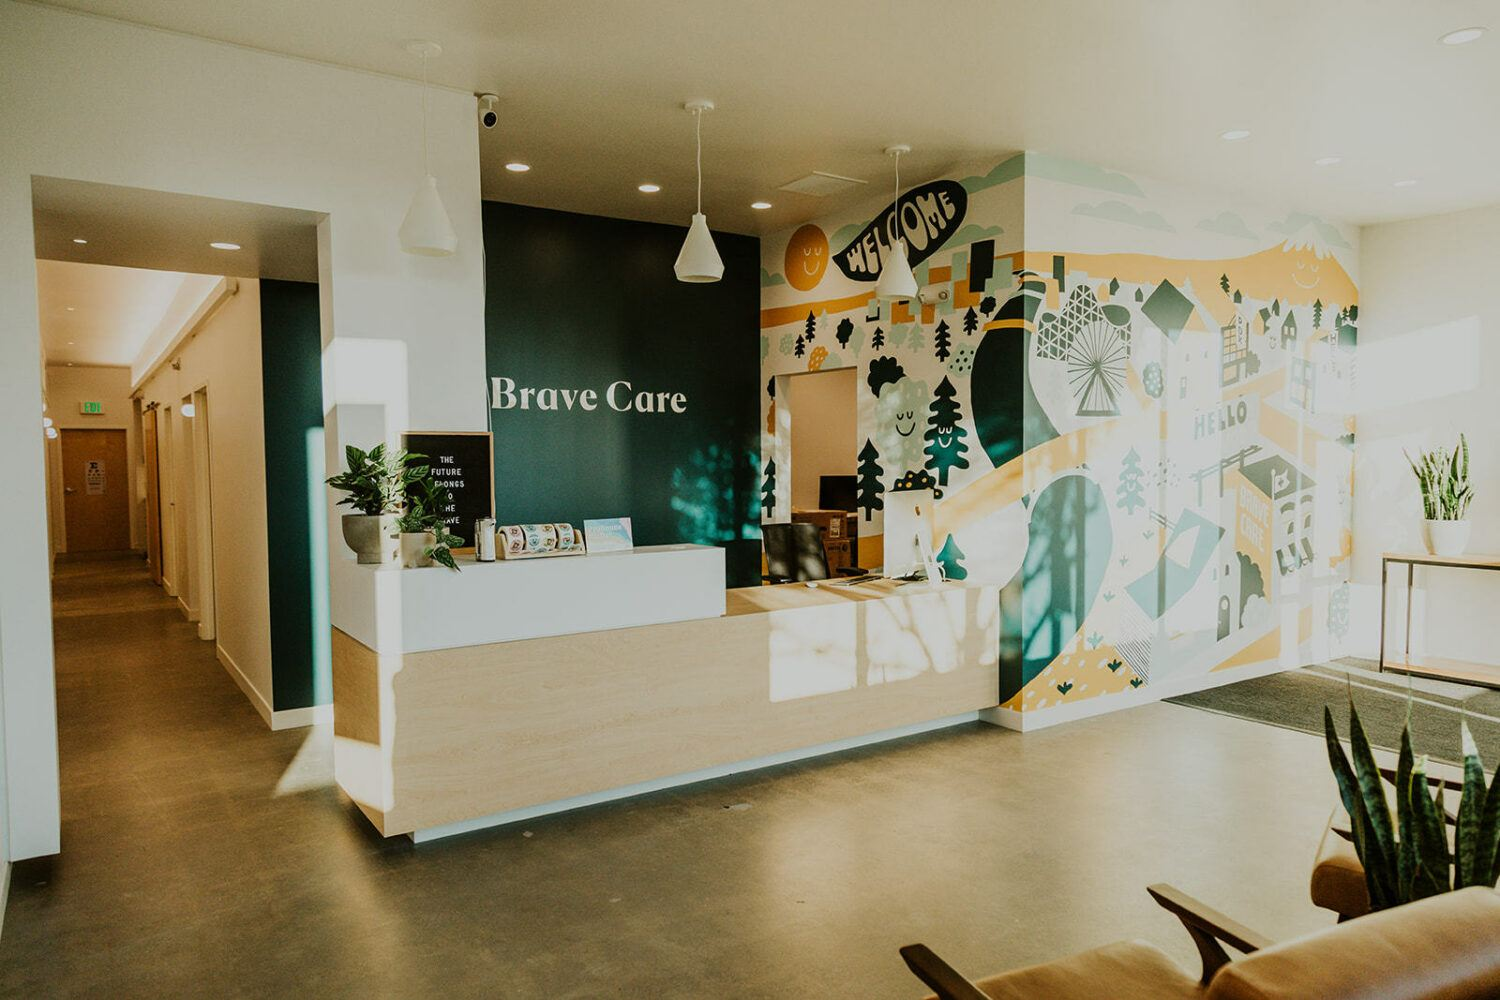 Brave Care Pediatric Primary and Urgent Care Expands Nationally and Raises $10M Series A